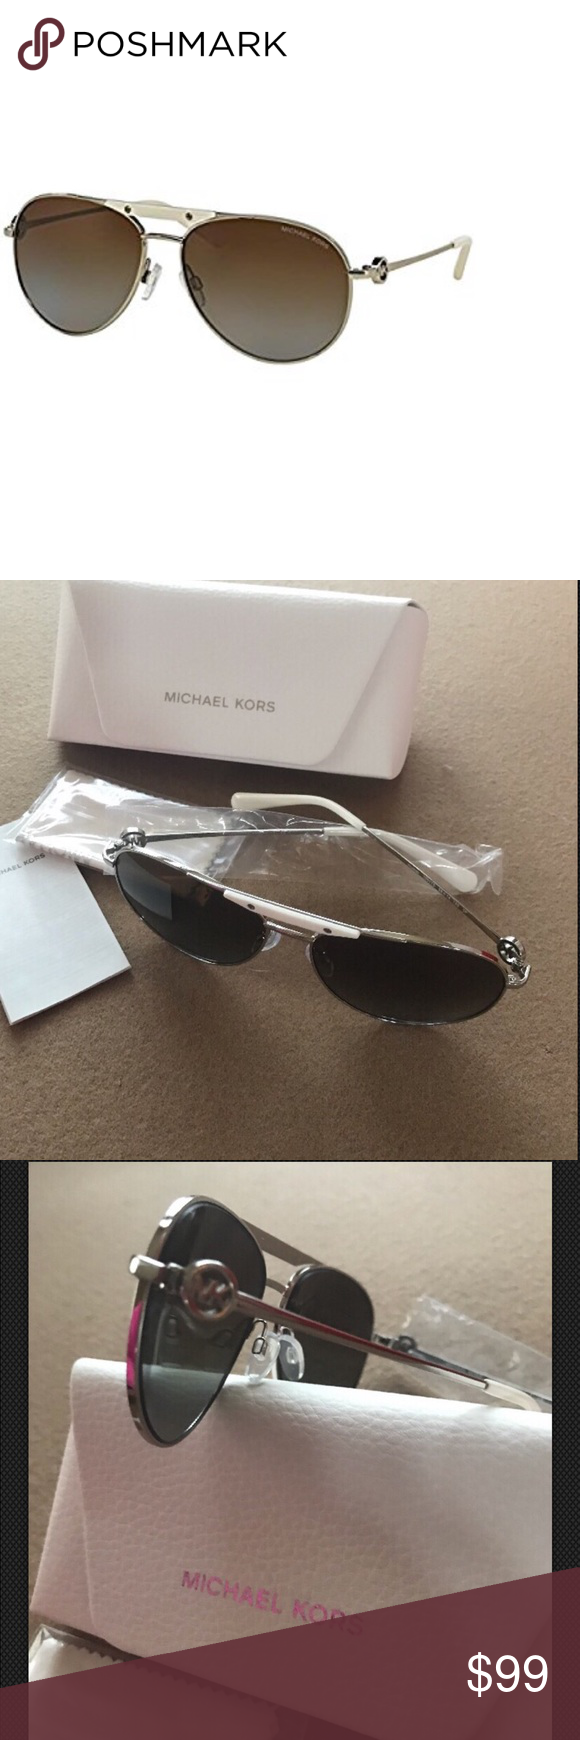 165af781d8 Michael Kors Zanzibar Silver Aviator Sunglasses AUTHENTIC Michael Kors  Zanzibar Sunglasses MK5001 1001T5 Silver Brown Gradient Polarized 58 14 135  BRAND NEW ...